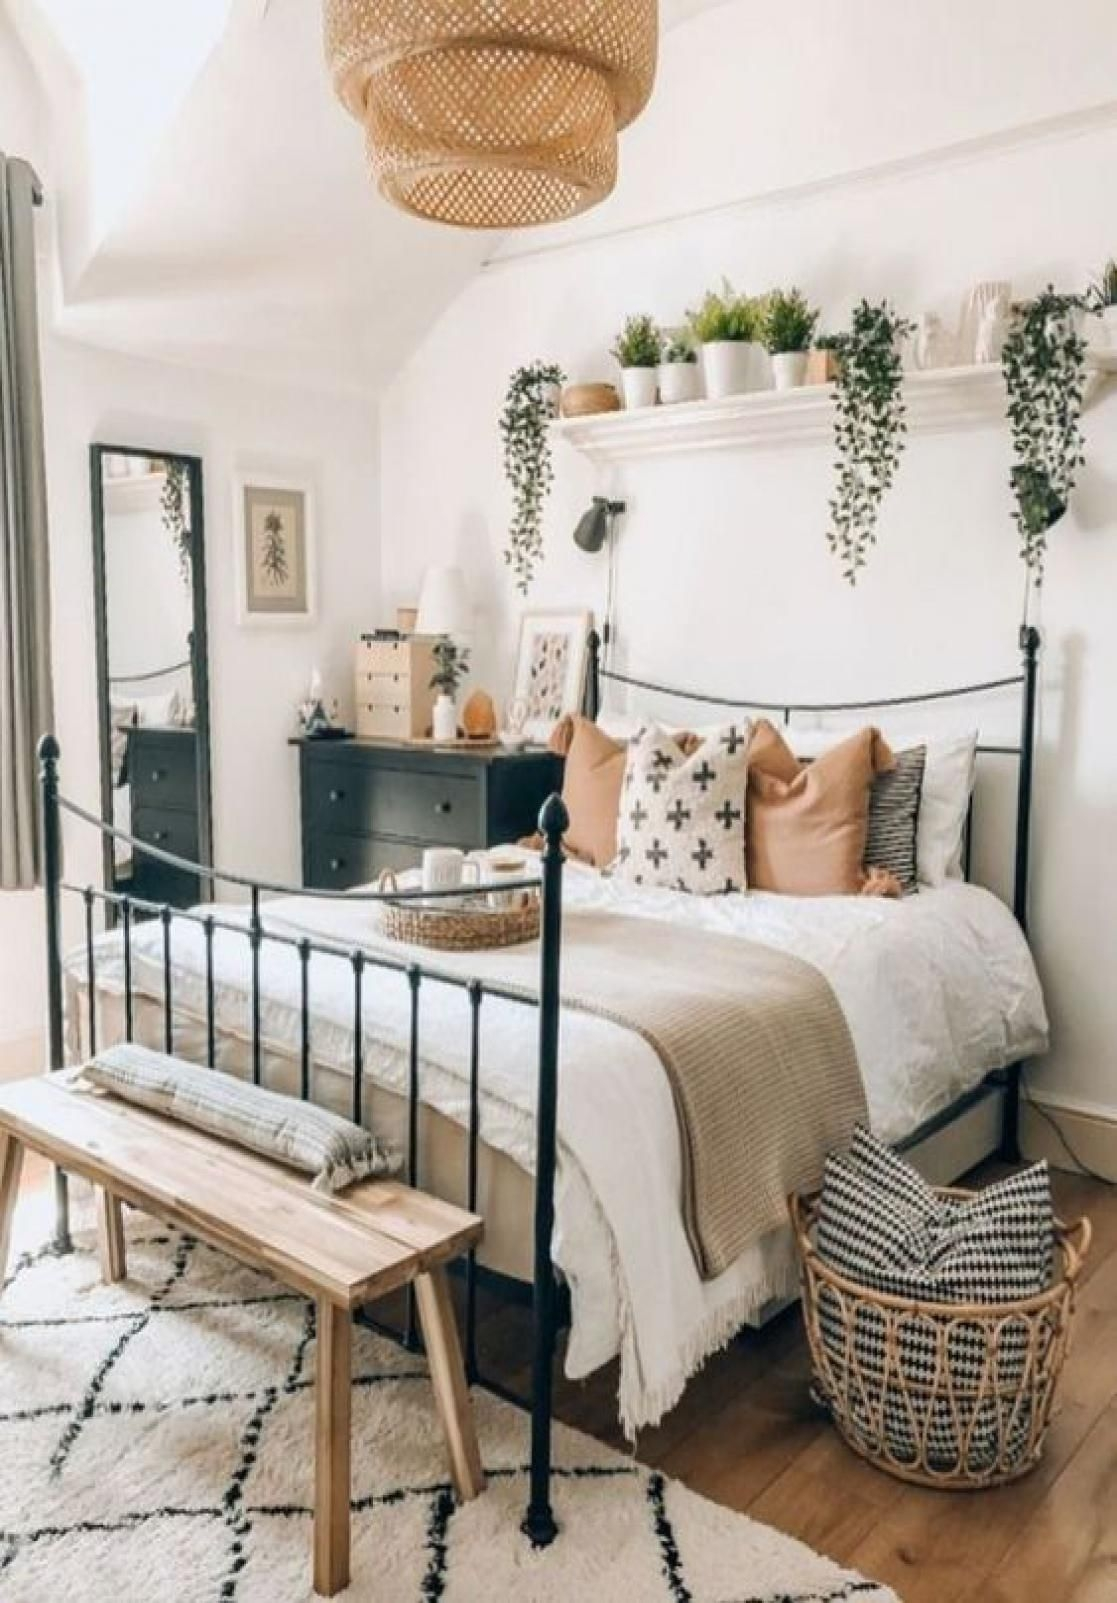 Magnificent Minimalist Bohemian Dorm Room Bedding On Wondrous Pin by Judit orszagh On Bedroom7 On Minimalist Bohemian Dorm Room Bedding